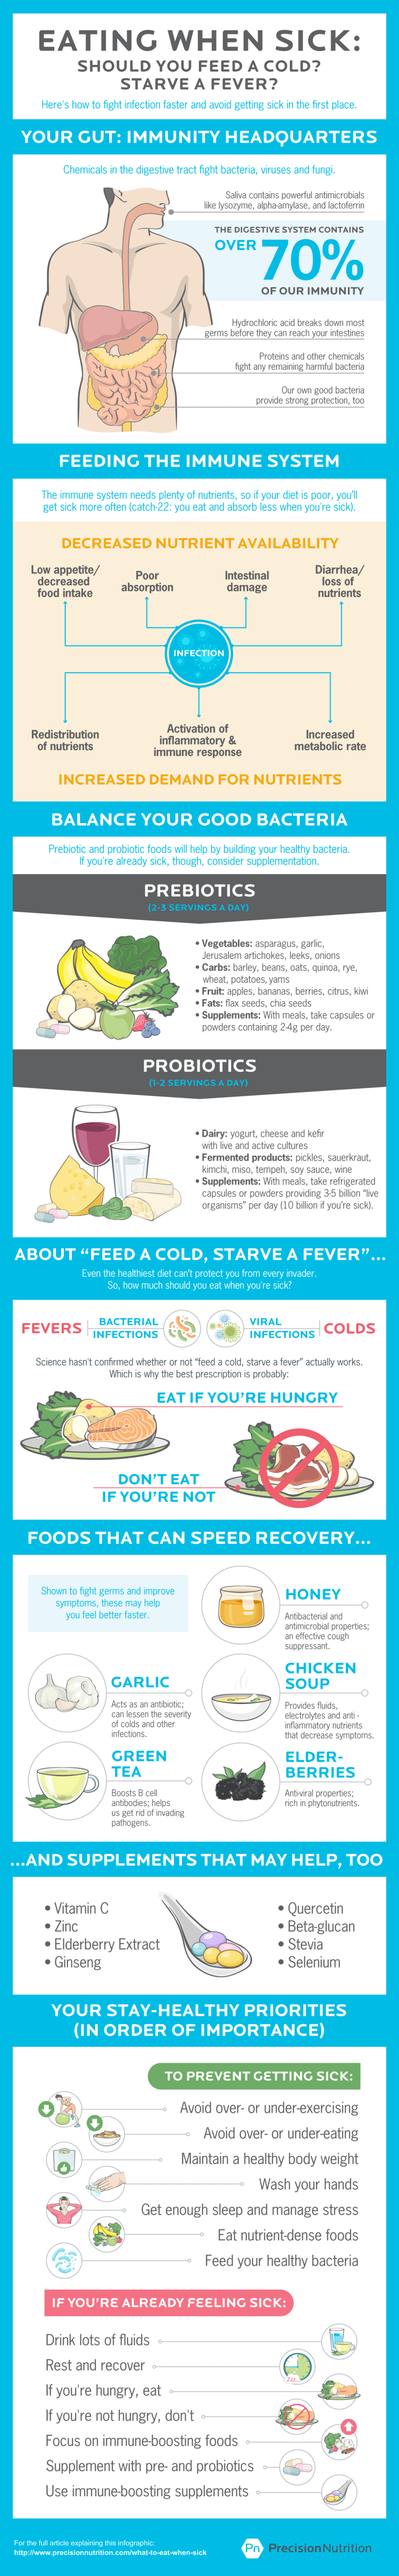 Precision Nutrition's infographic on what foods you should be eating while sick